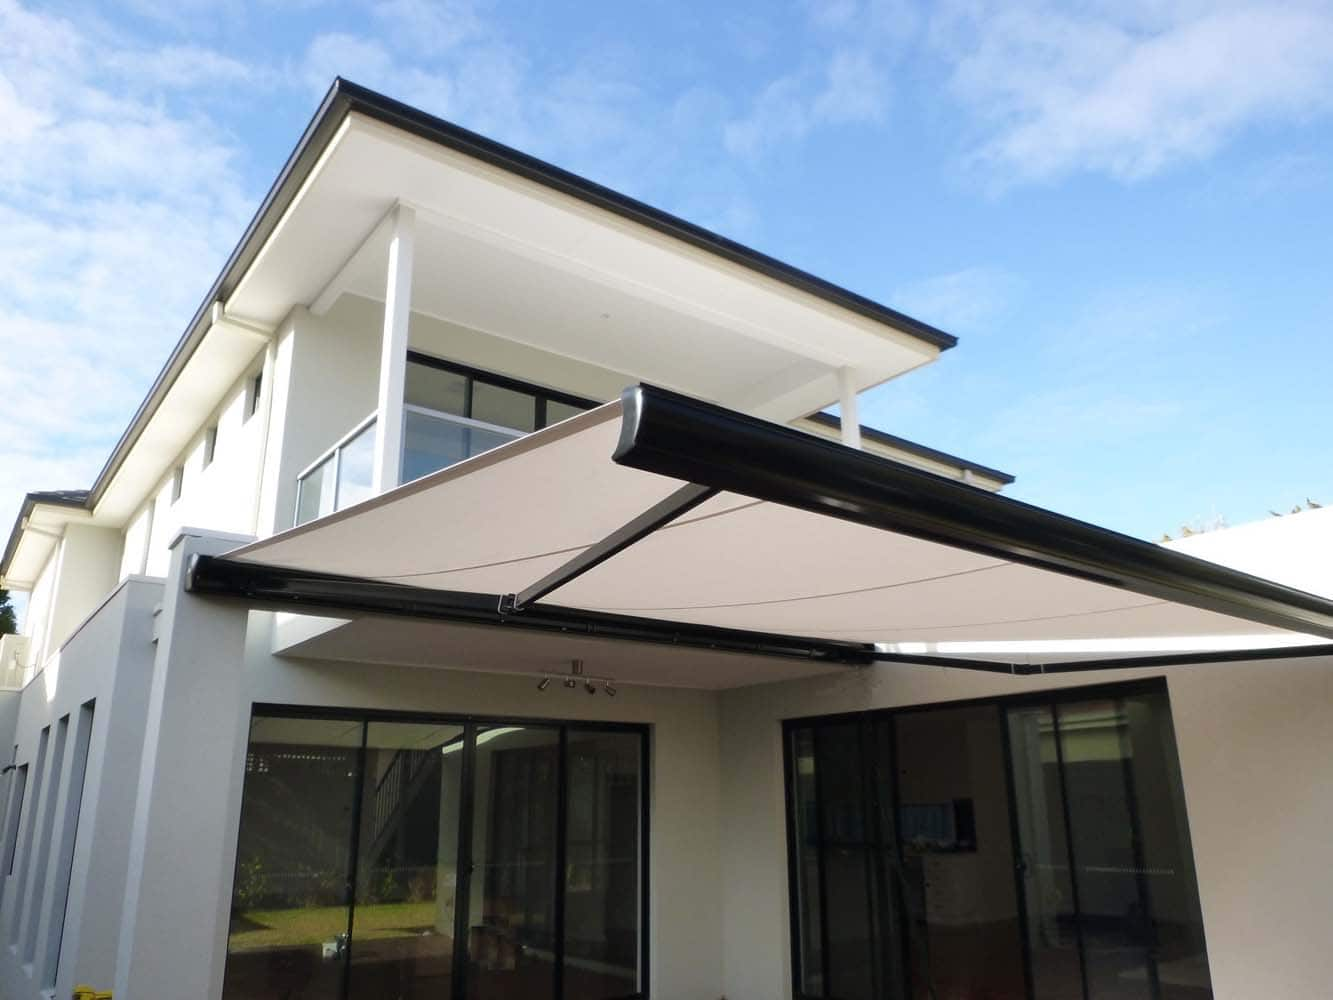 OUTDOOR AWNING 9